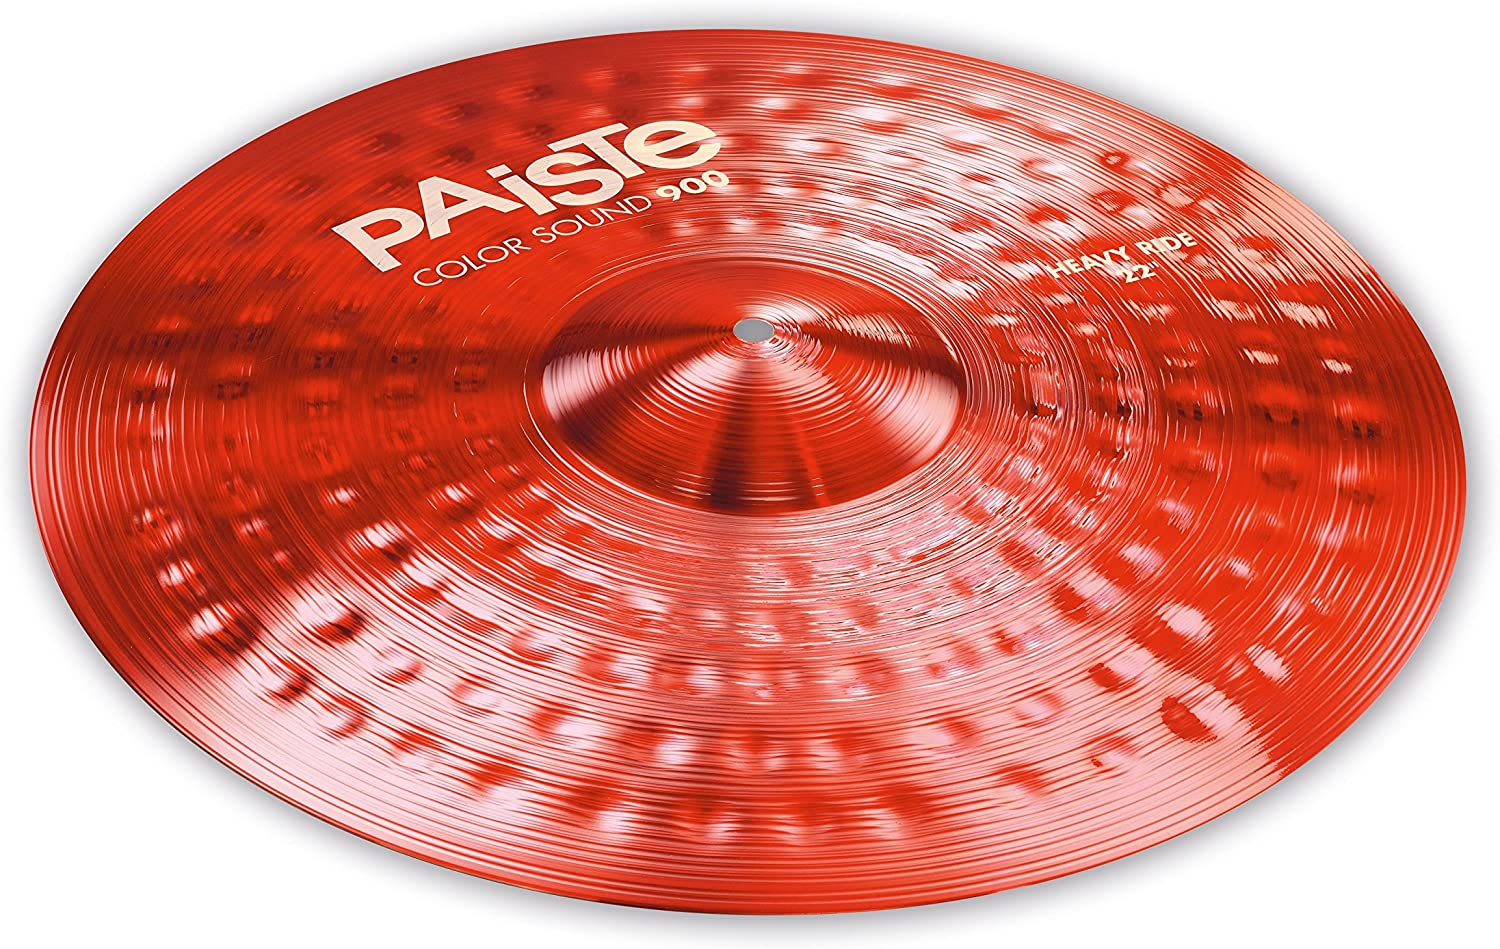 Paiste Colorsound 900 Heavy Ride Cymbal Red 22 in.